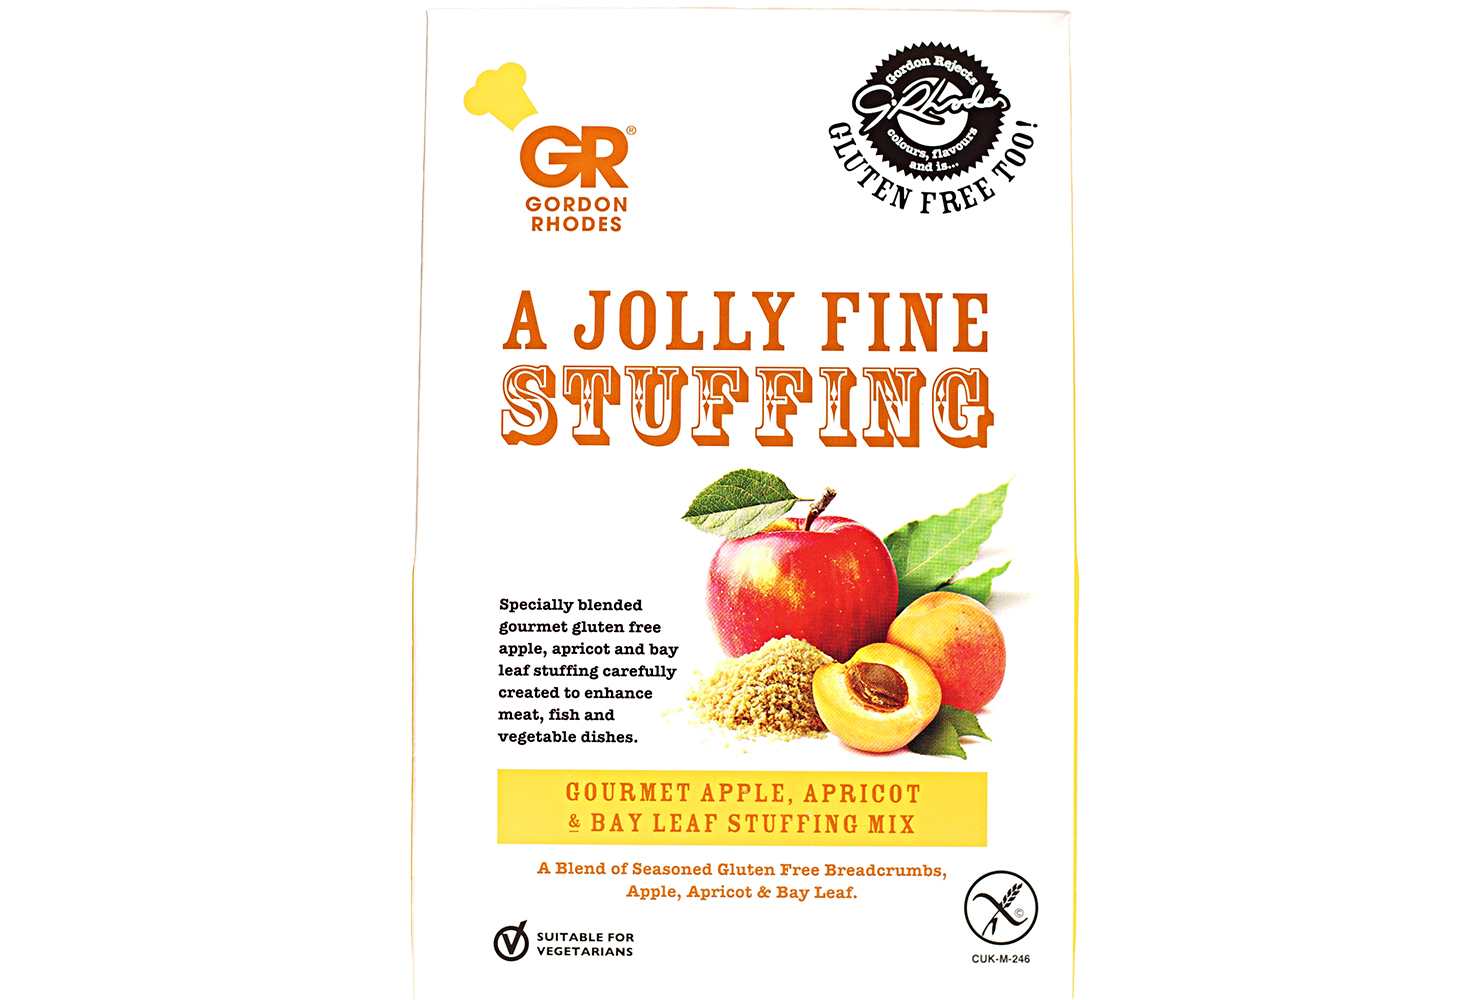 GR GLUTEN FREE APPLE APRICOT & BAY STUFFING MIX